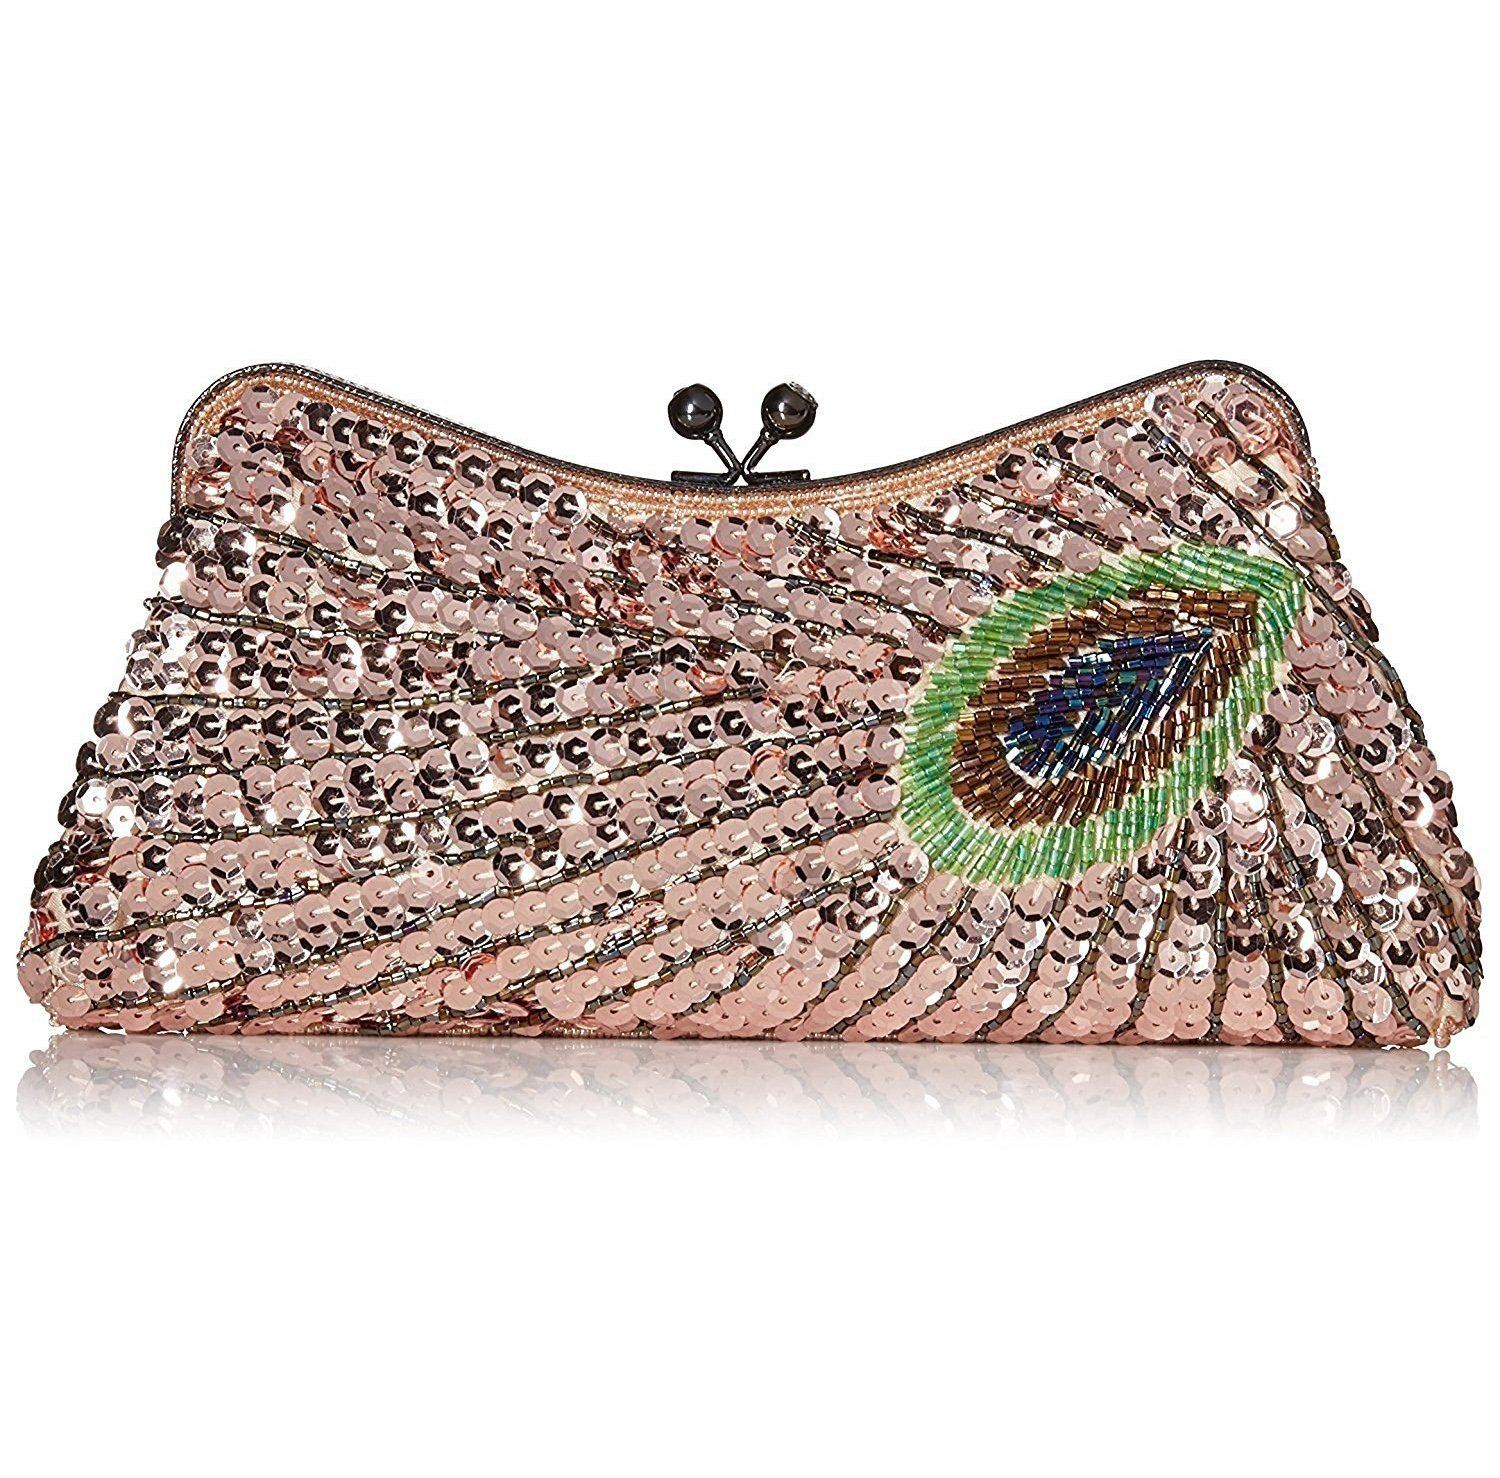 Woman Handbag Beaded Clutch Peacock Sequin Evening Bag Champagne